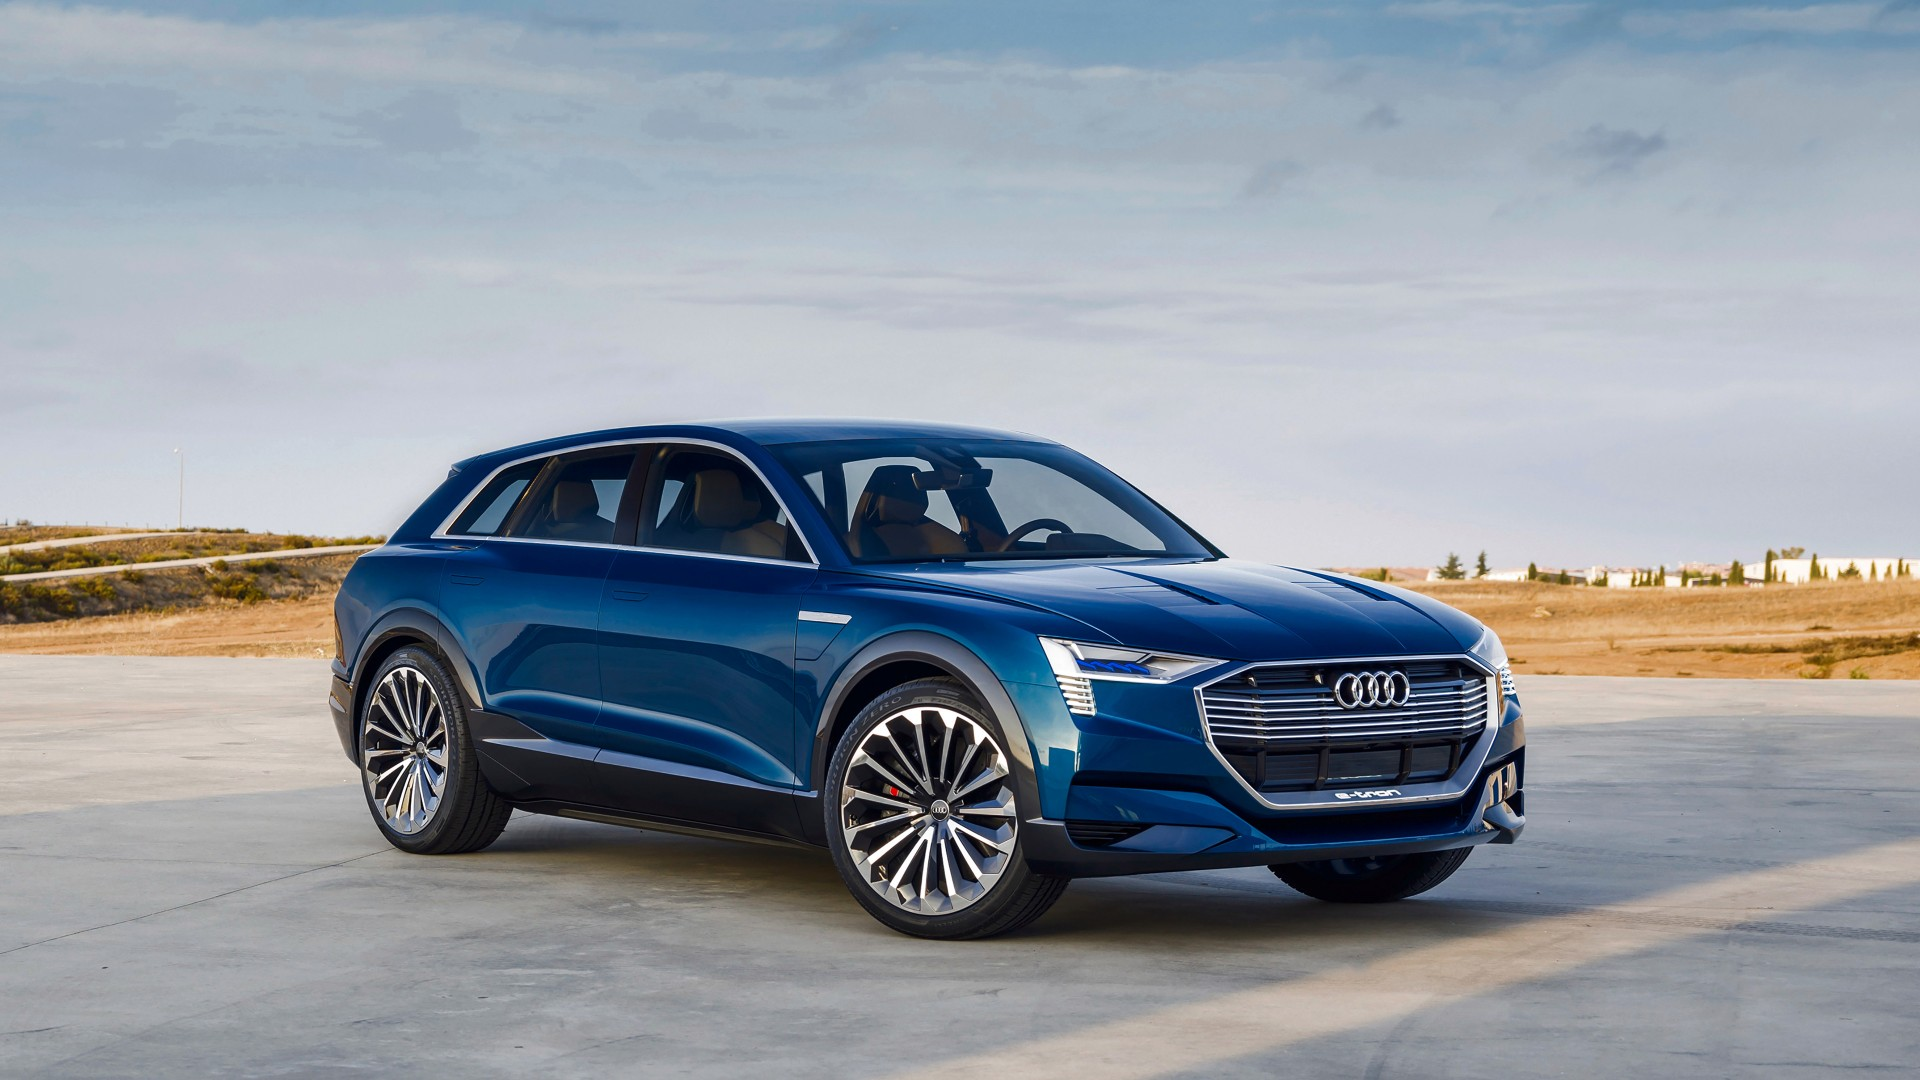 2018 Audi e Tron Quattro Concept Wallpaper  HD Car Wallpapers